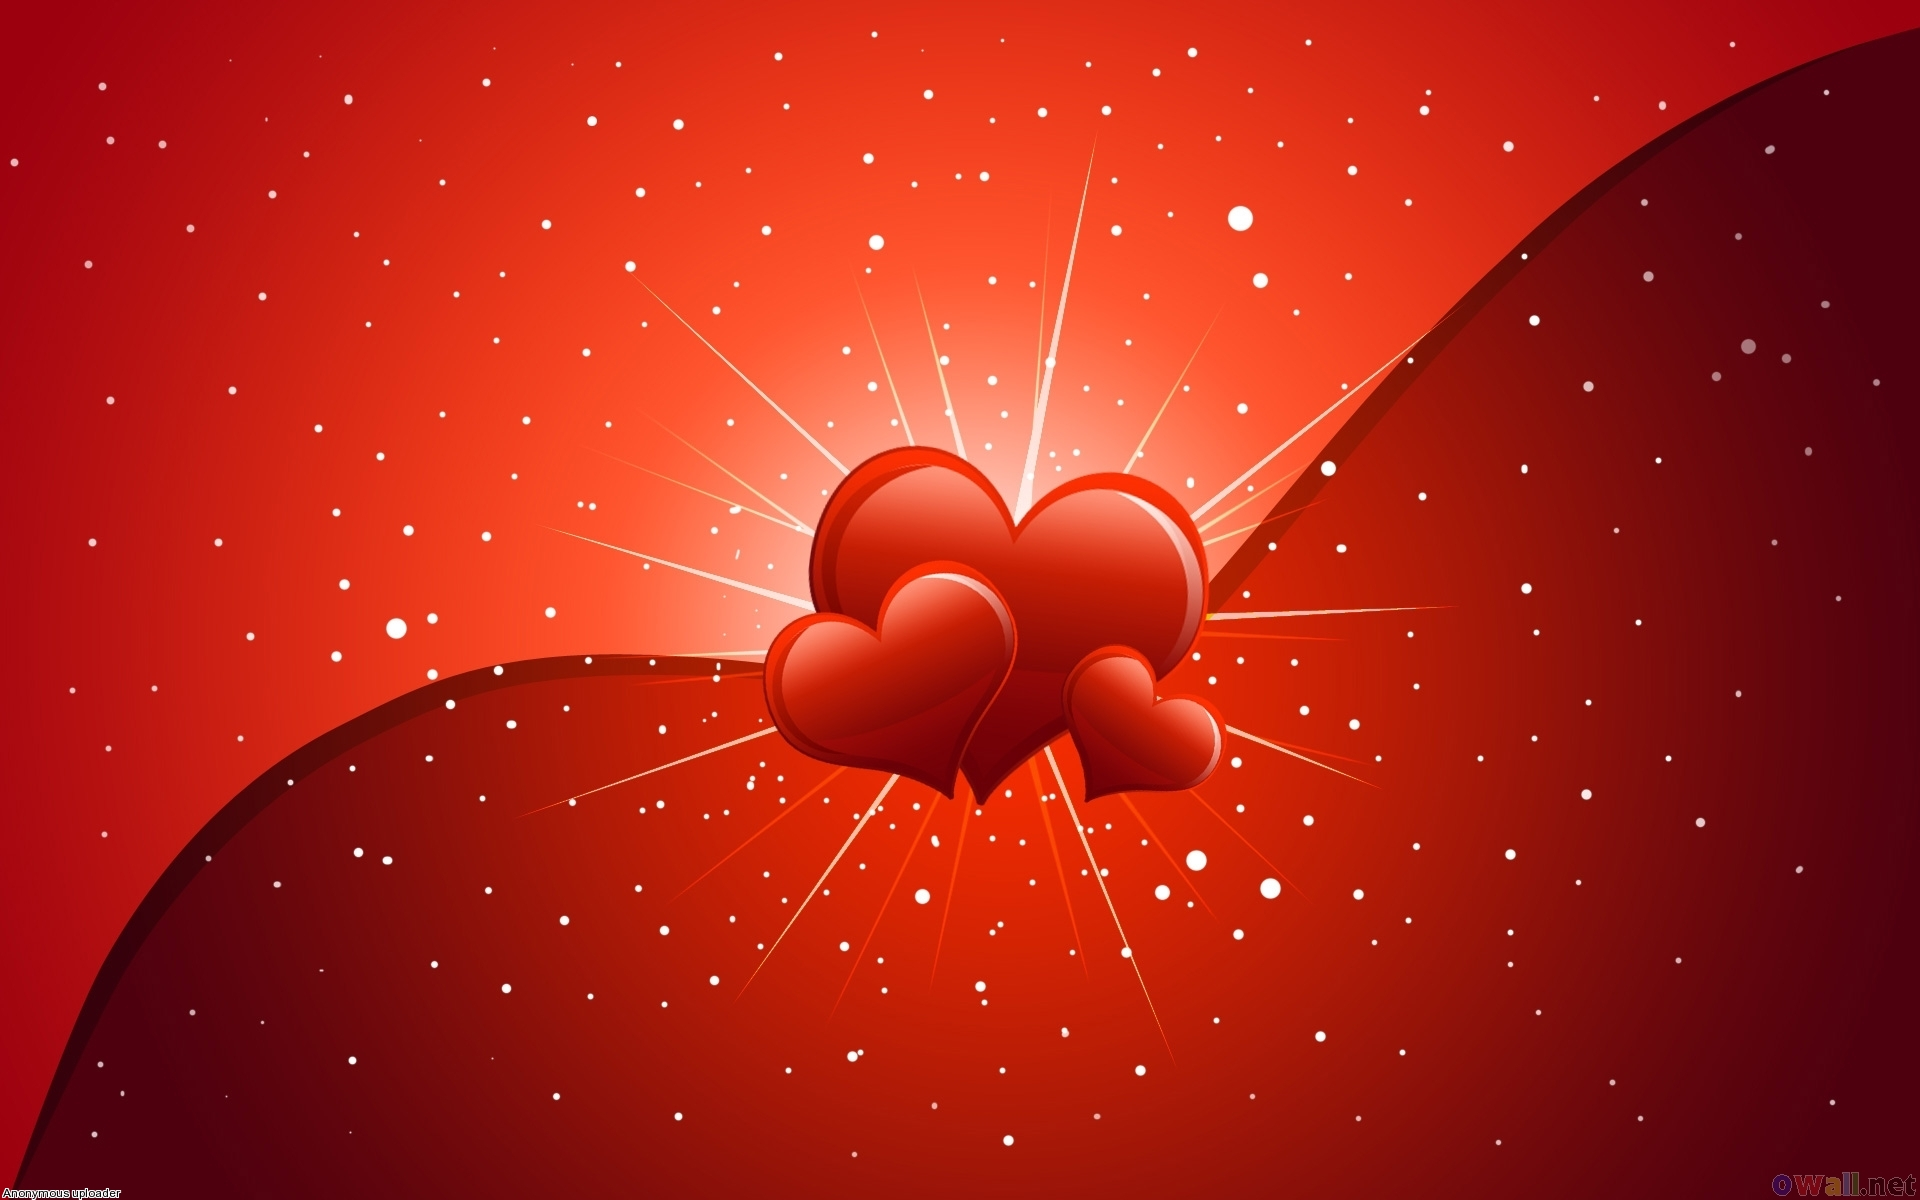 Artistic - Heart  - Valentine Wallpaper